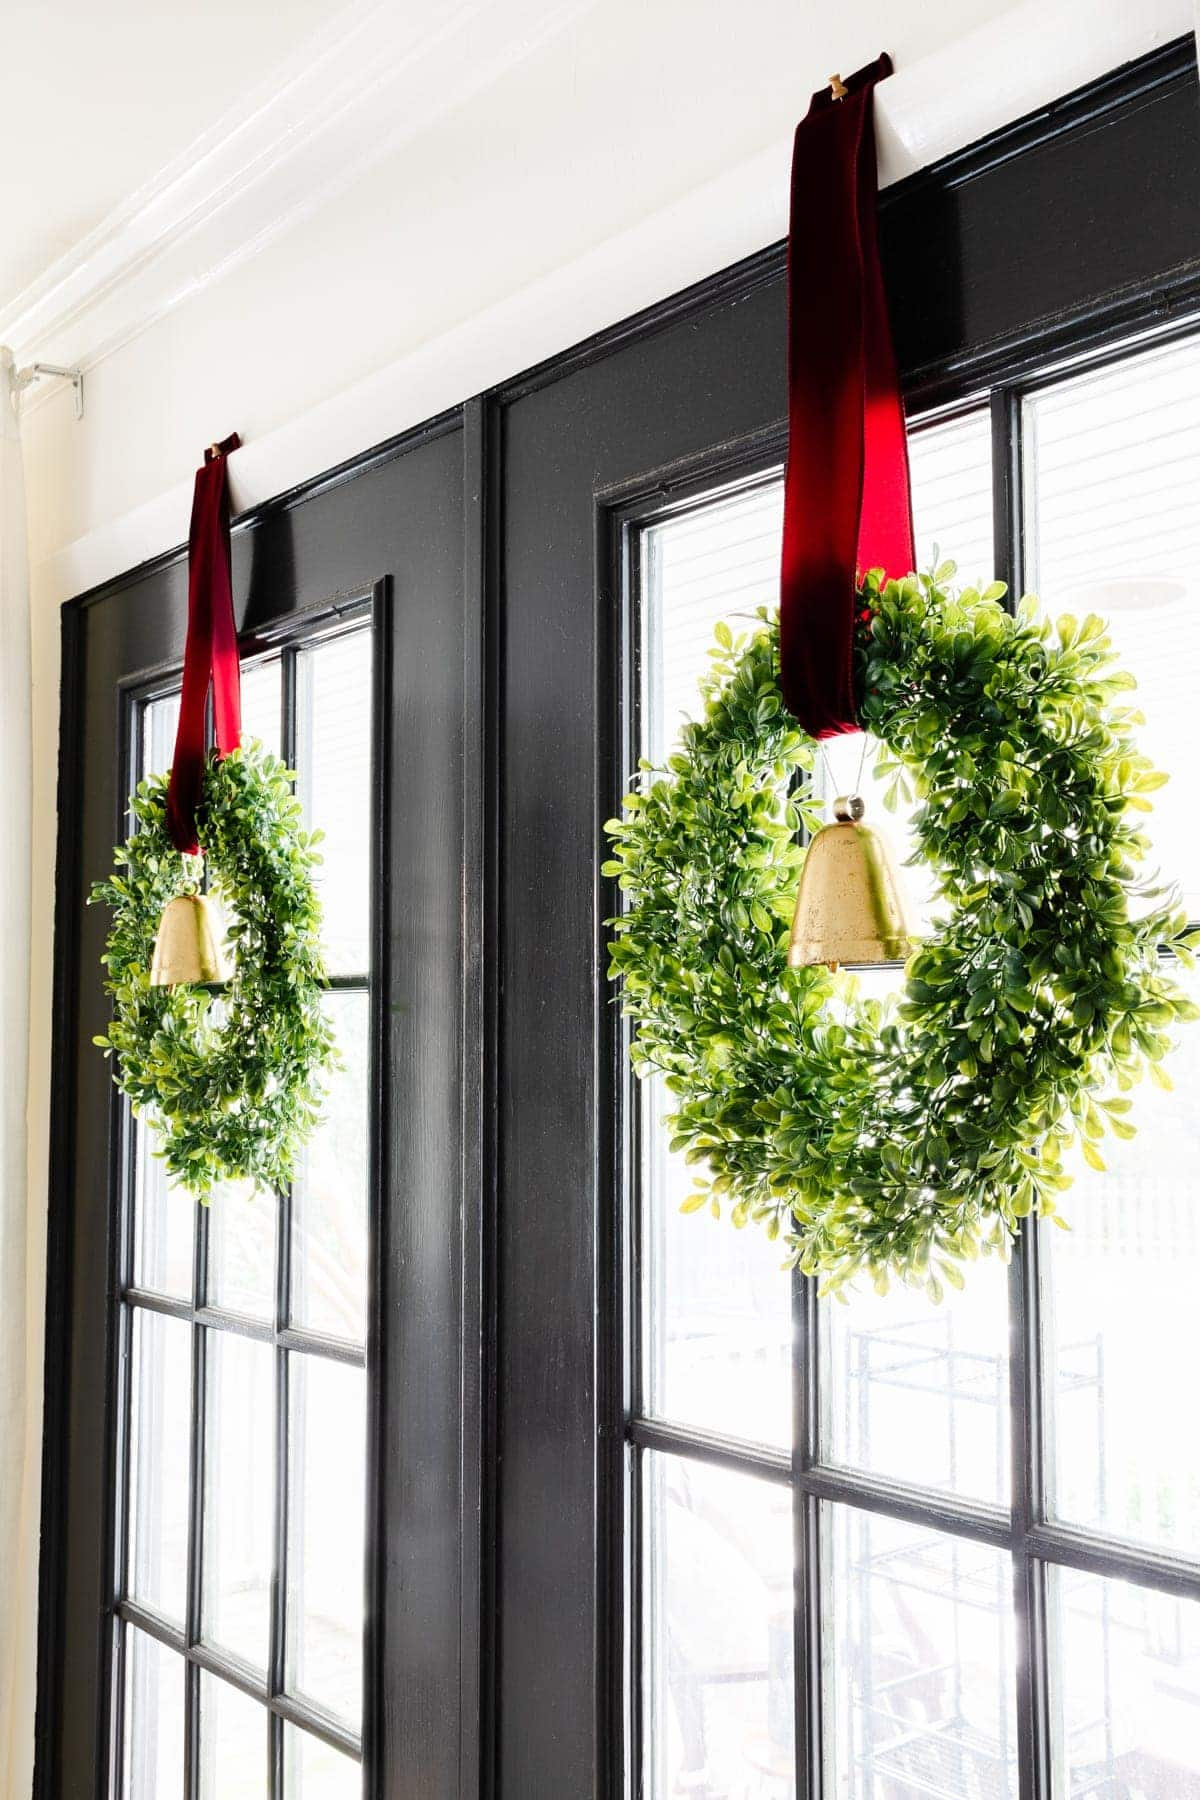 Hanging wreaths on windows